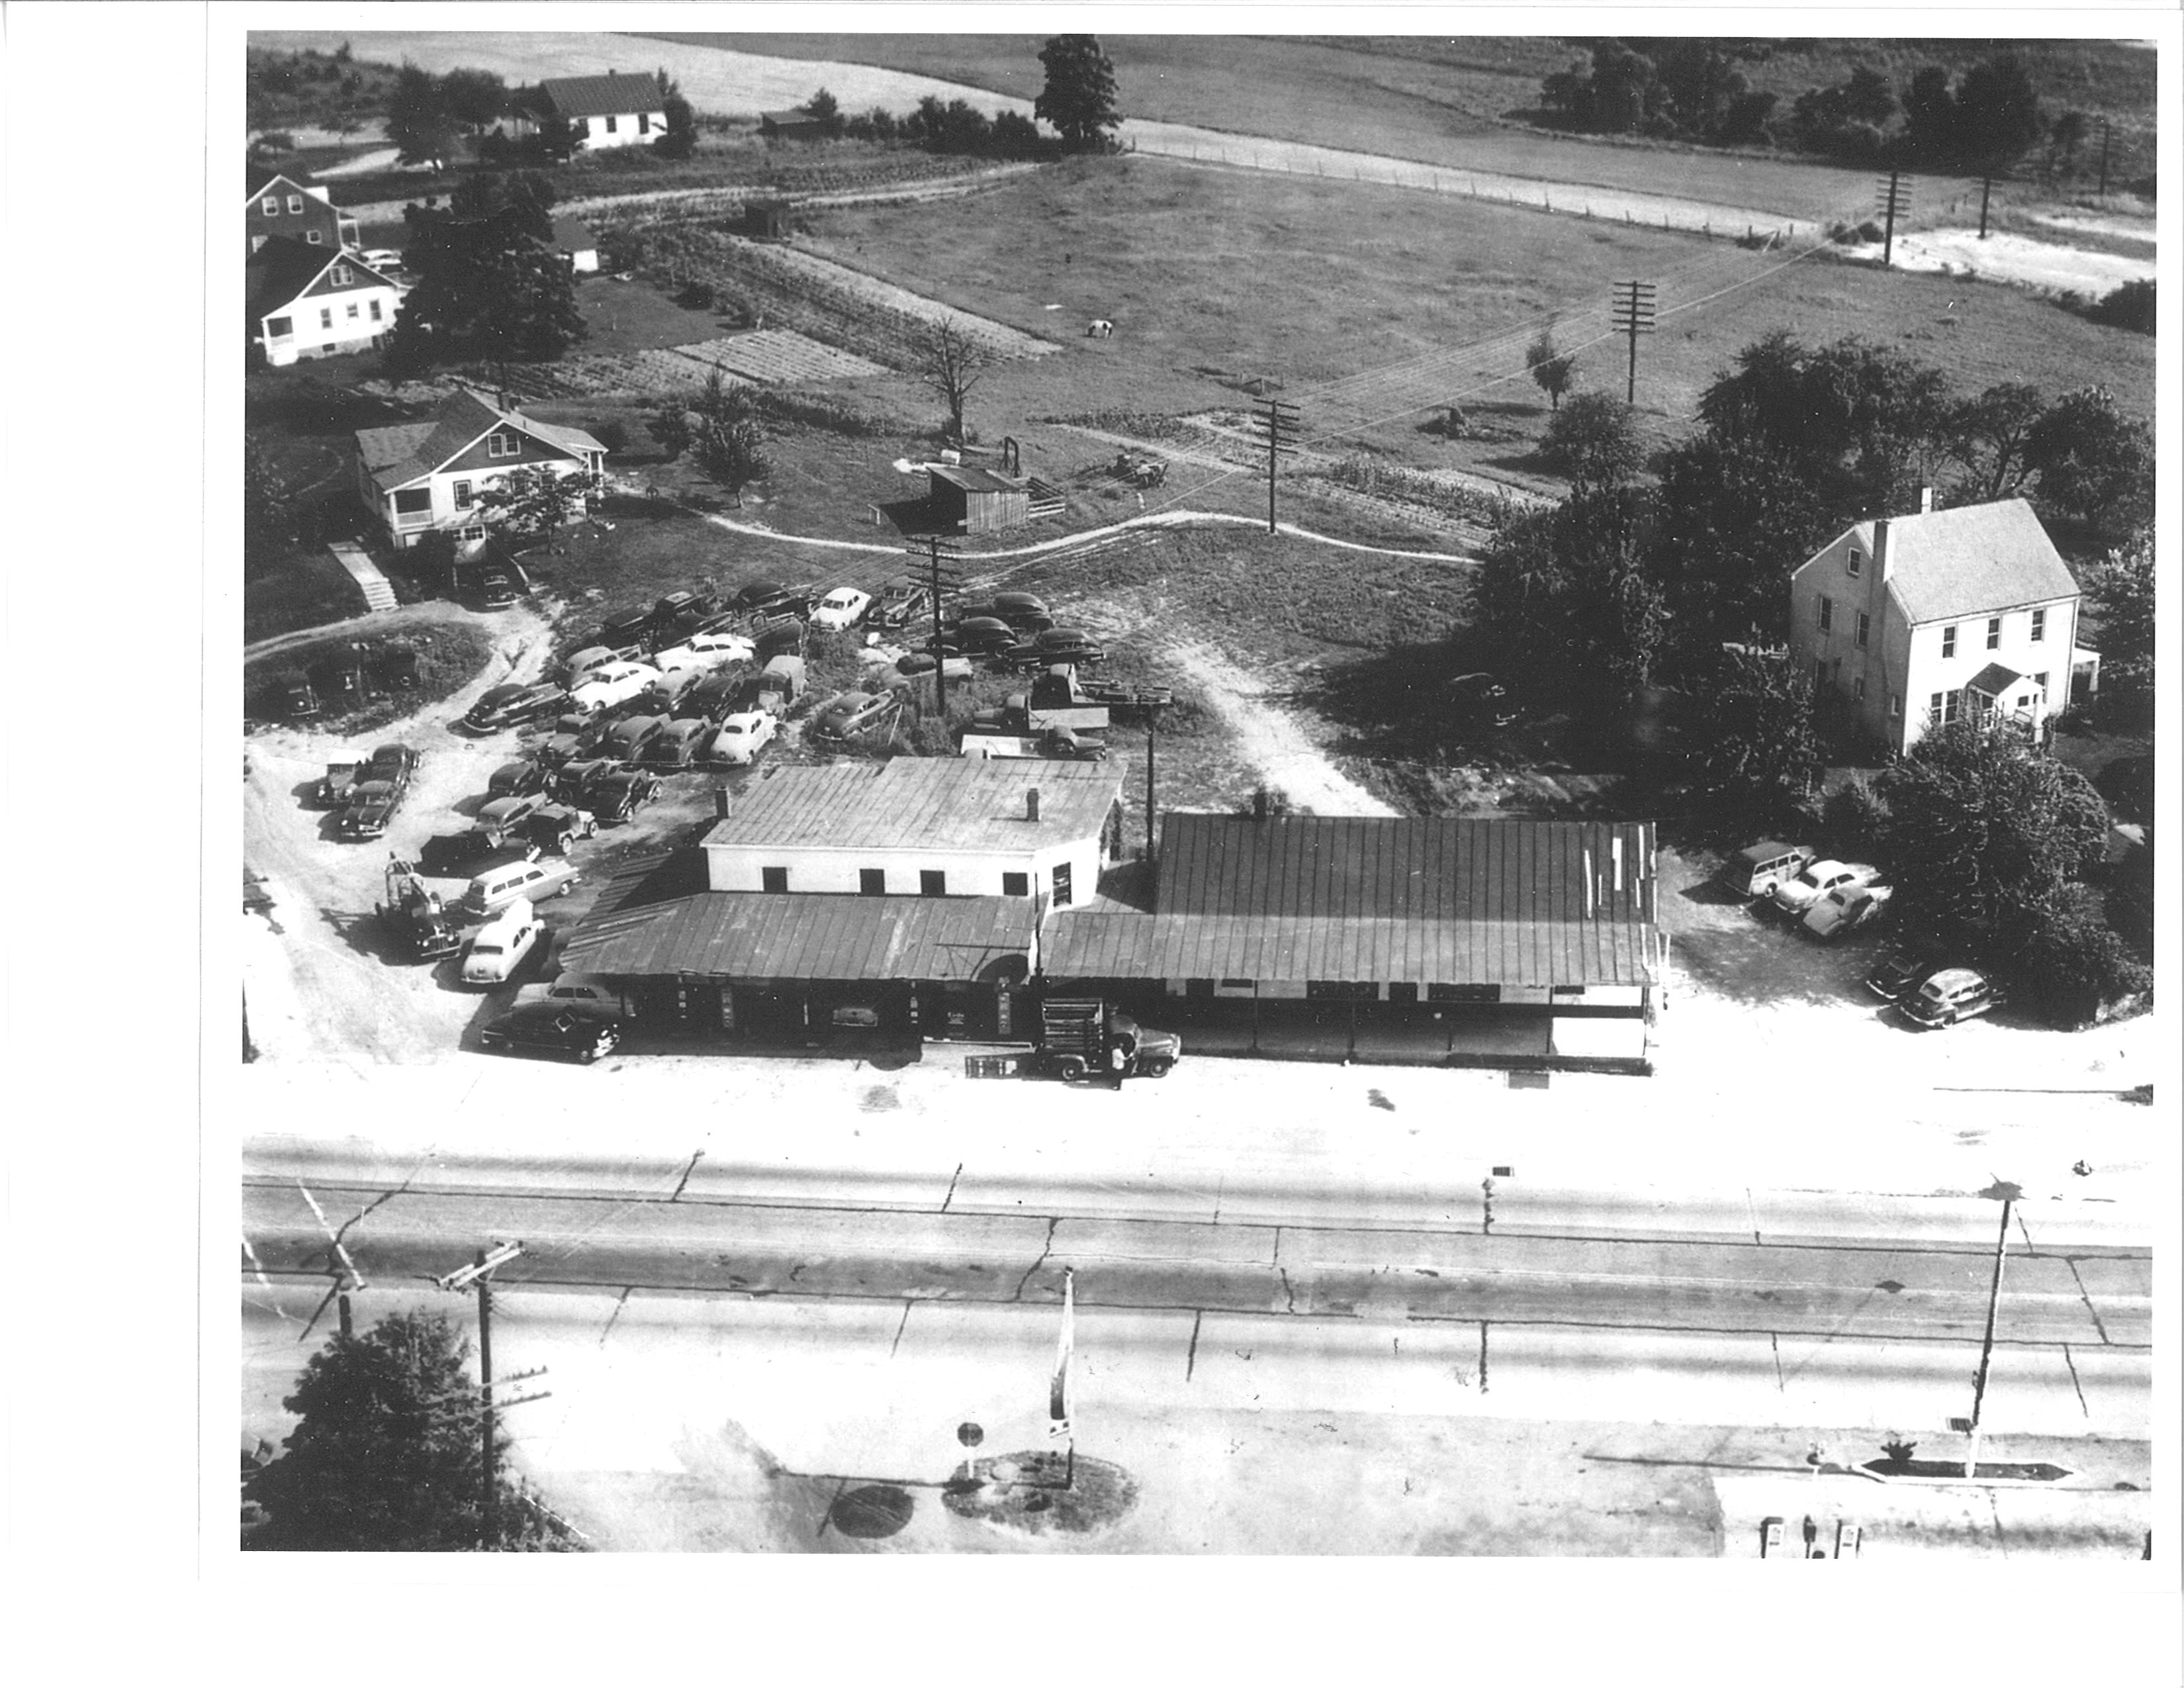 Menefee's Garage, one of a number of service stations in town. Menefee's can be found on Mildred's map.